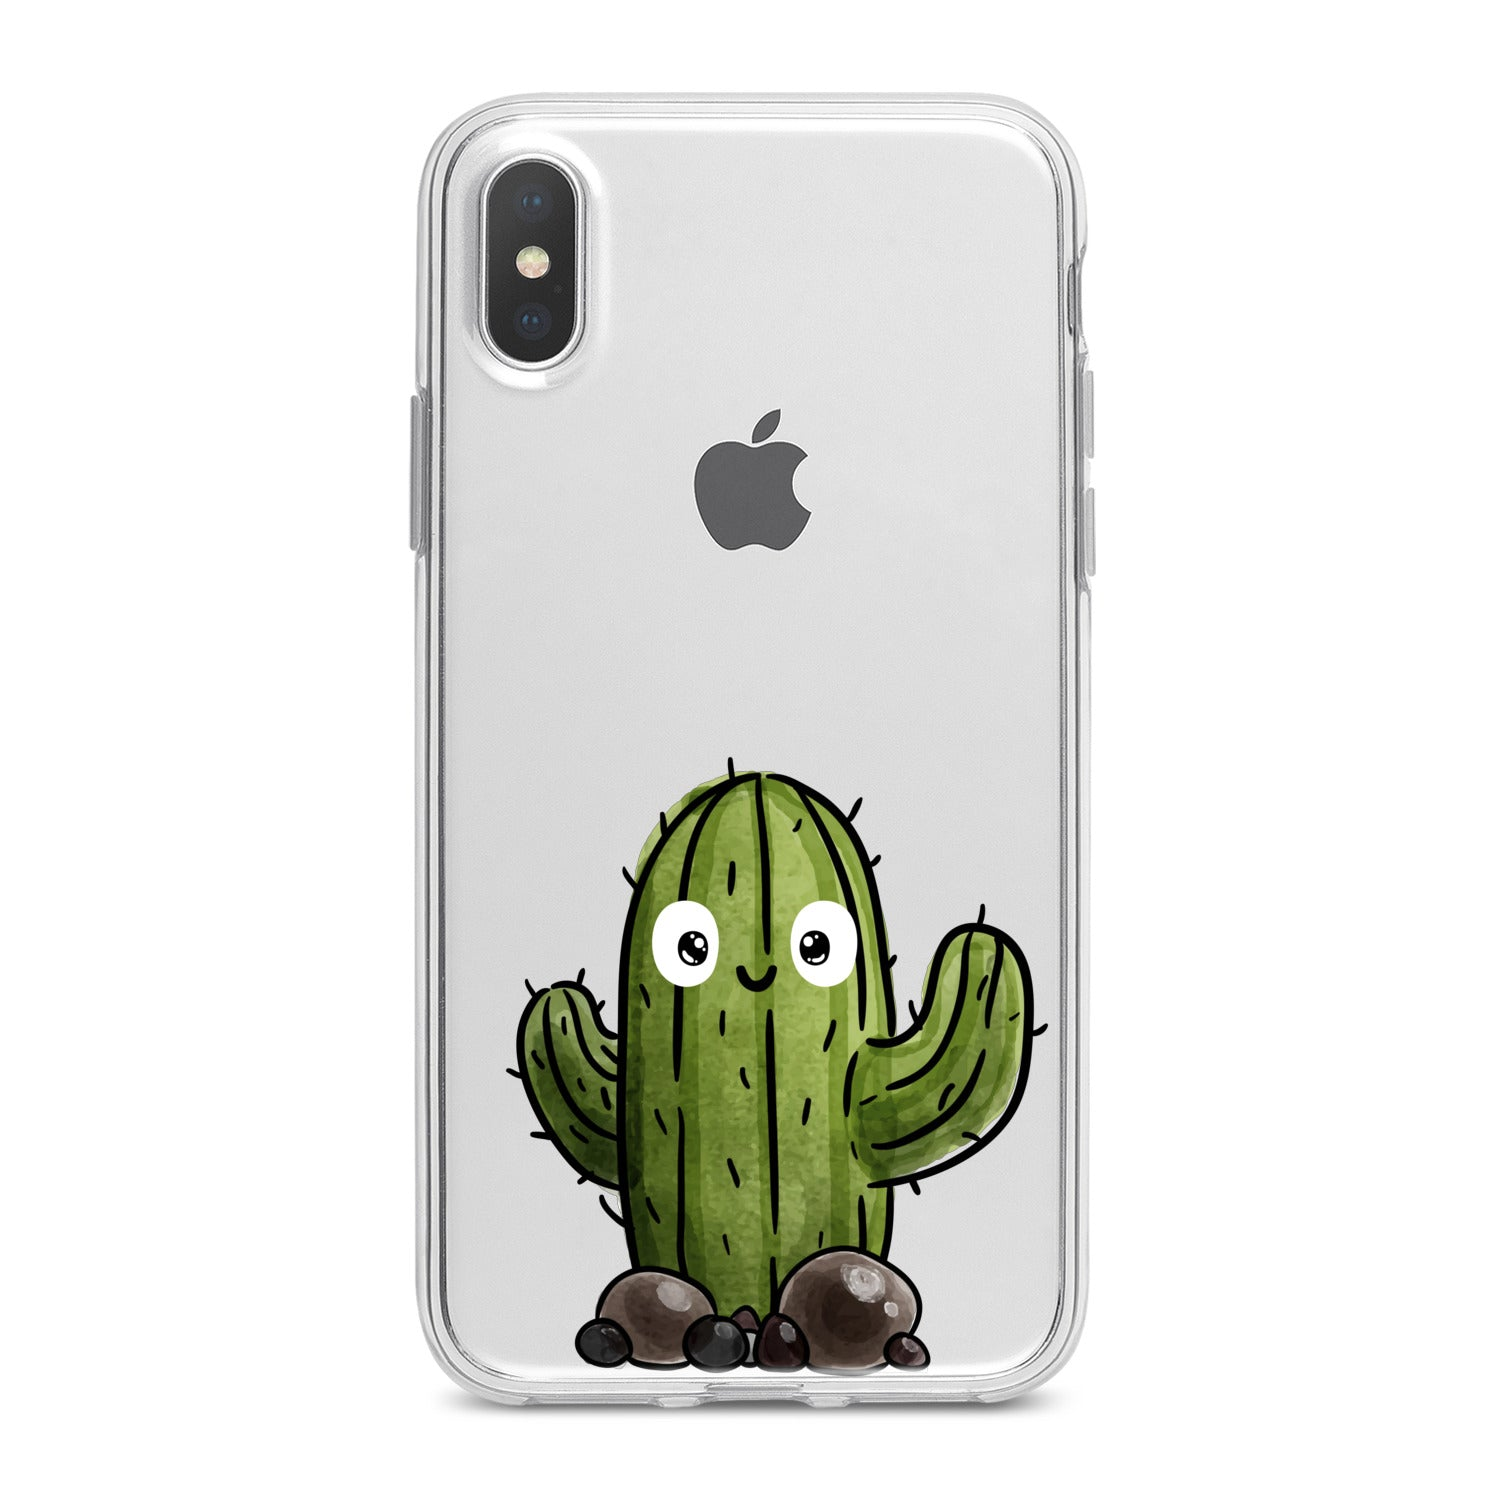 Lex Altern Kawaii Cacti Print Phone Case for your iPhone & Android phone.